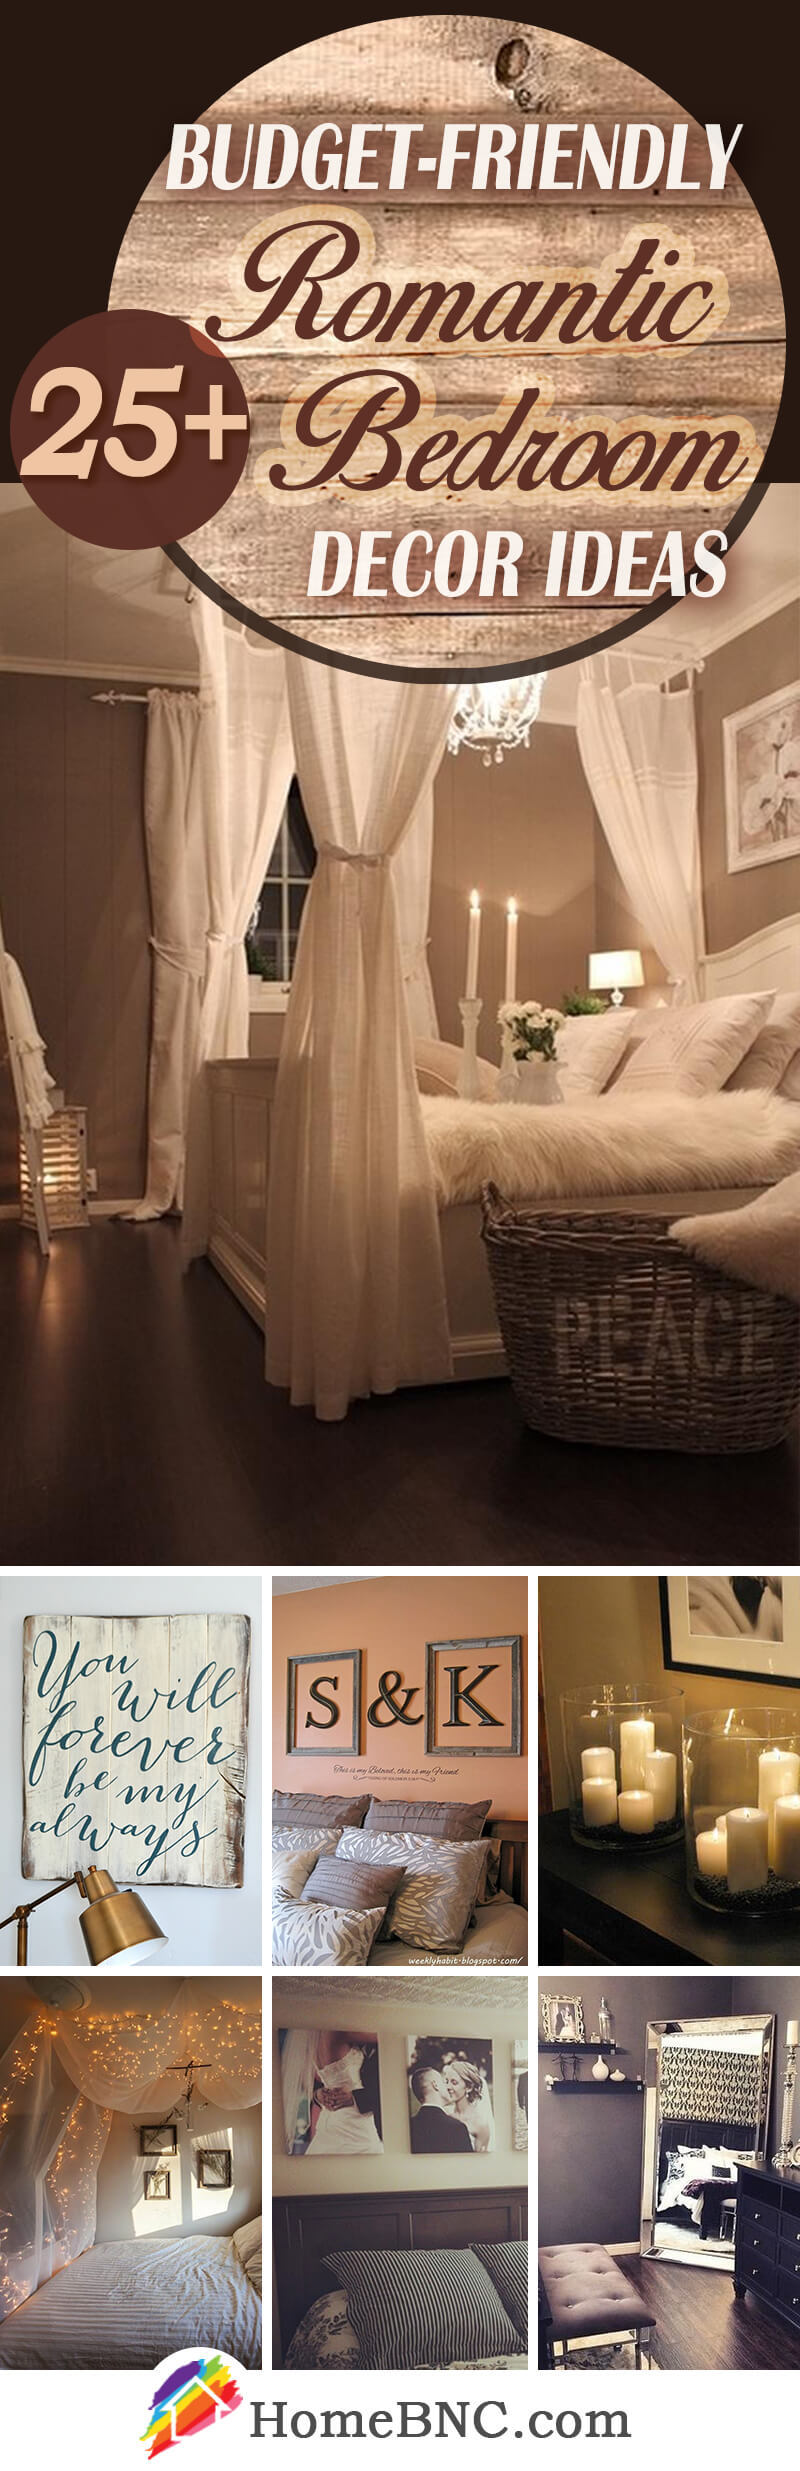 Romantic Bedroom Decorating Ideas On A Budget